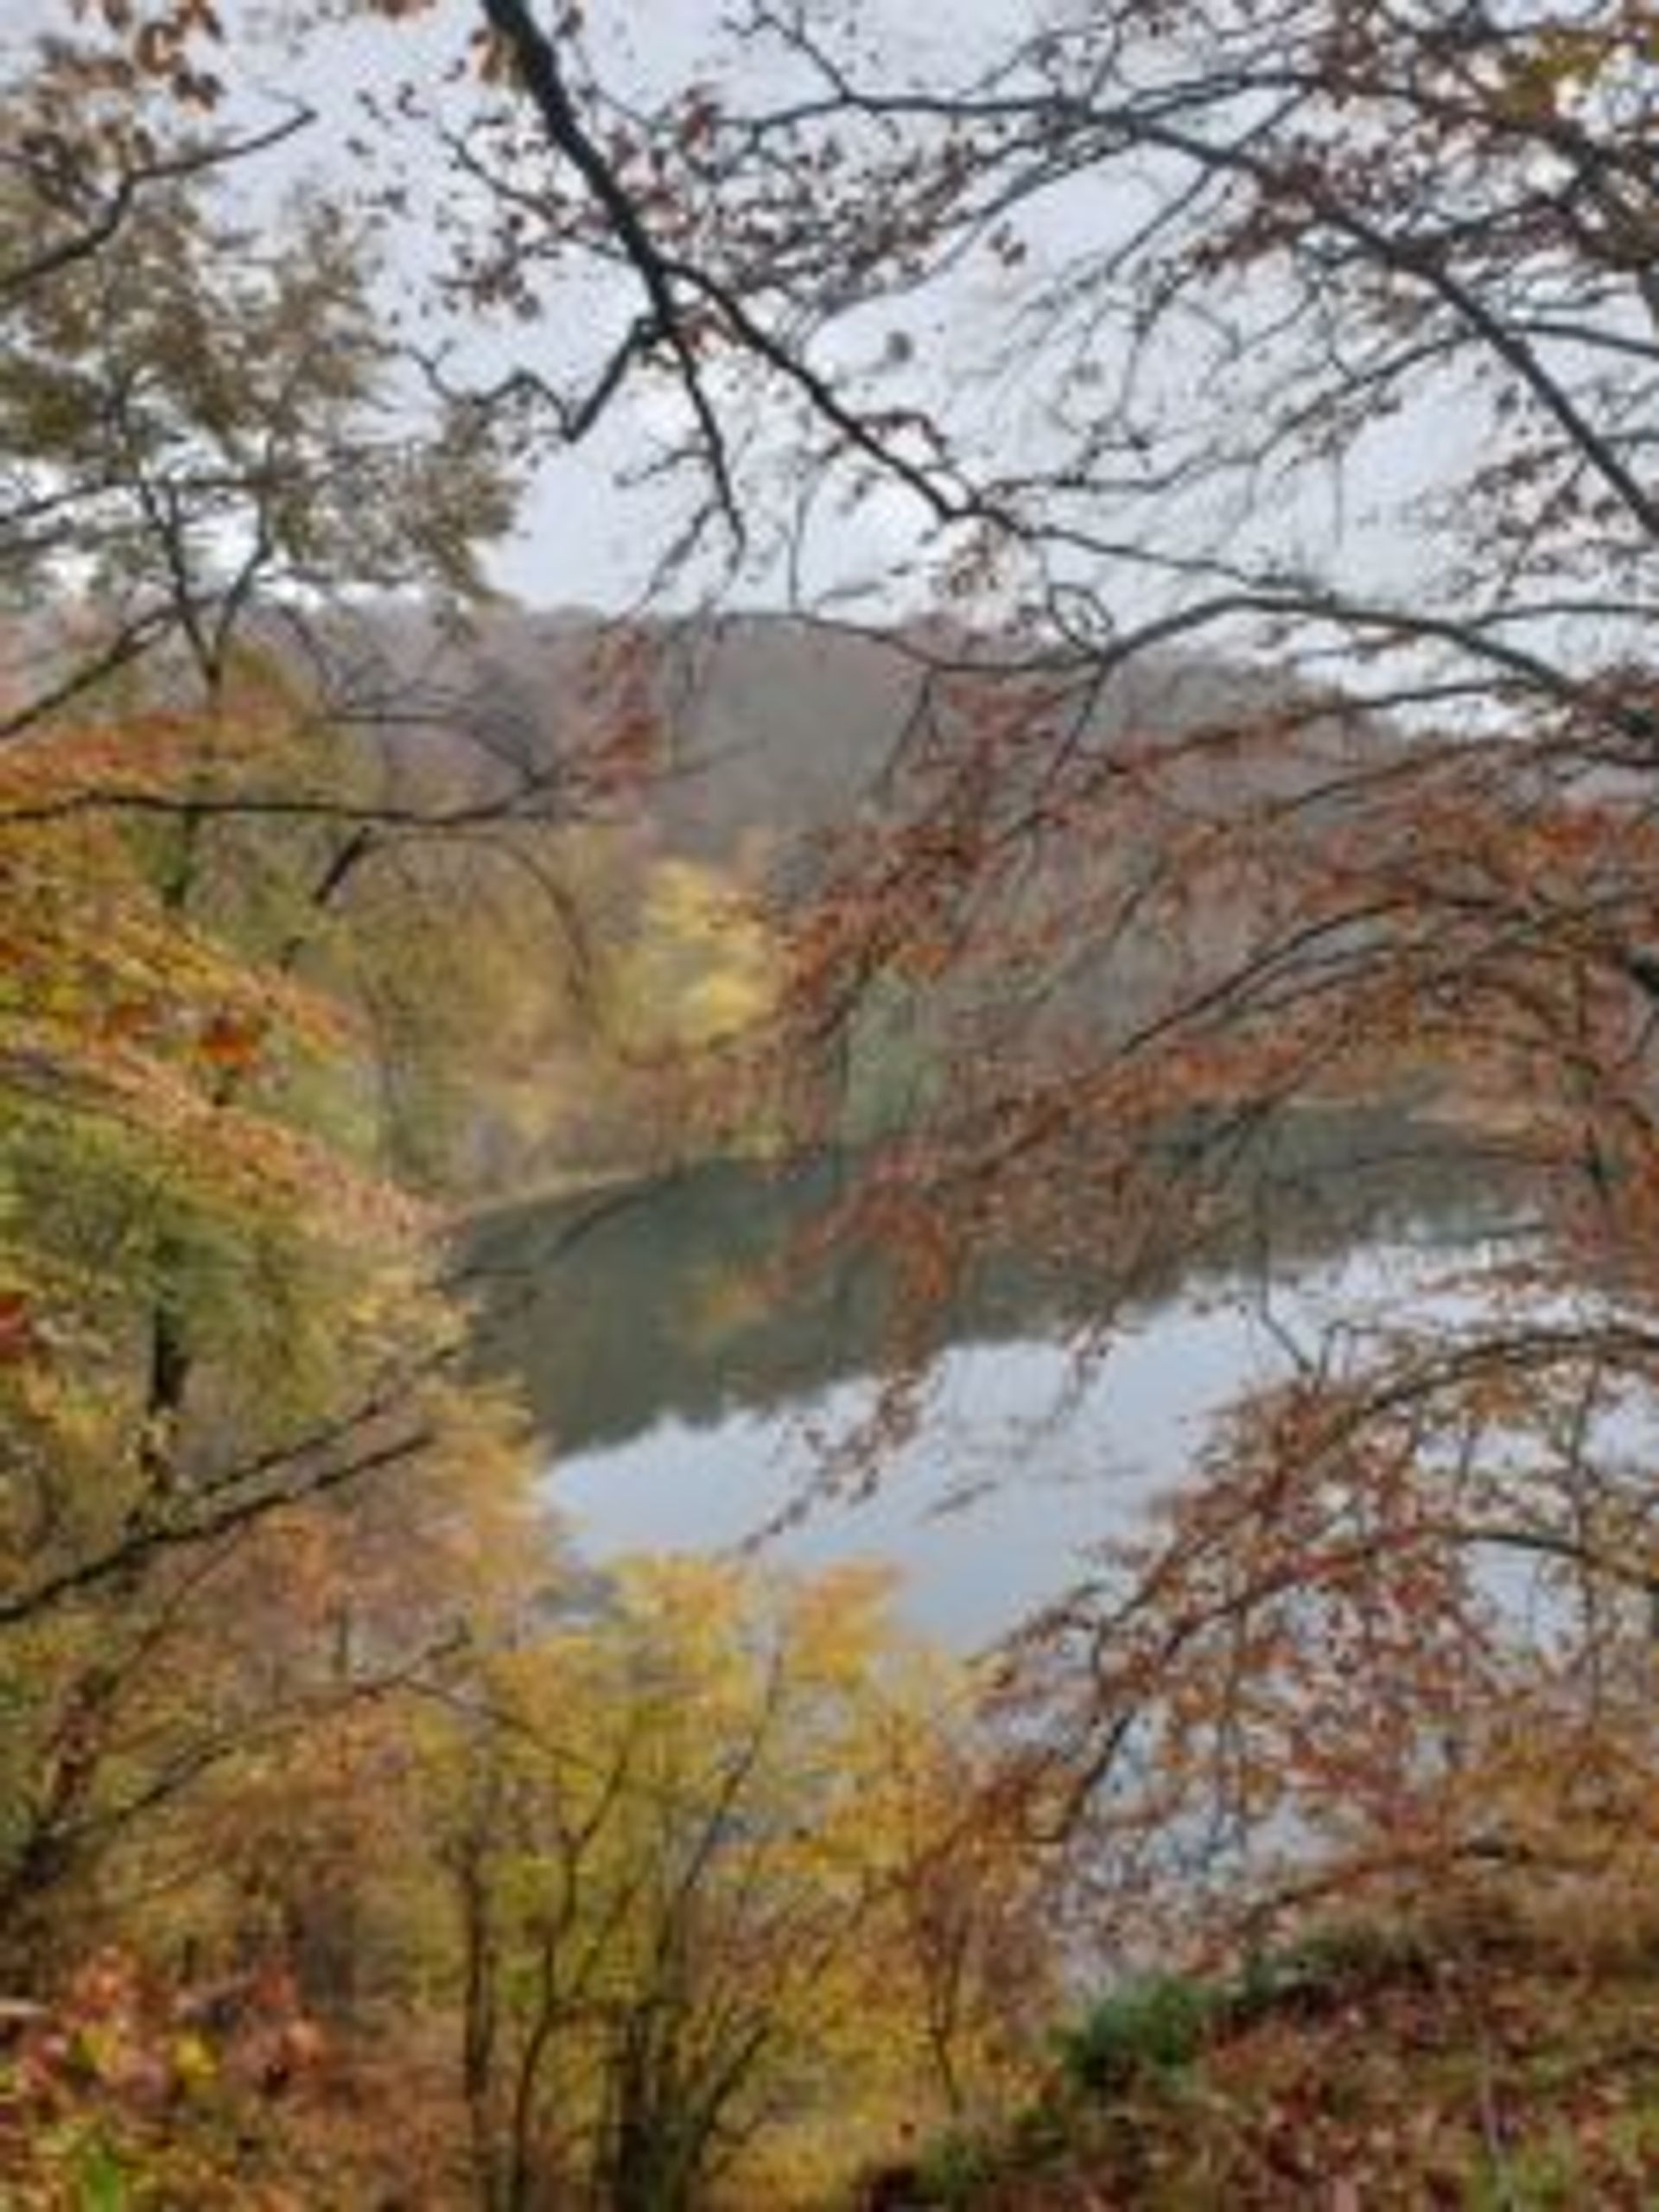 A lake surrounded by trees covered in brown and orange leaves.